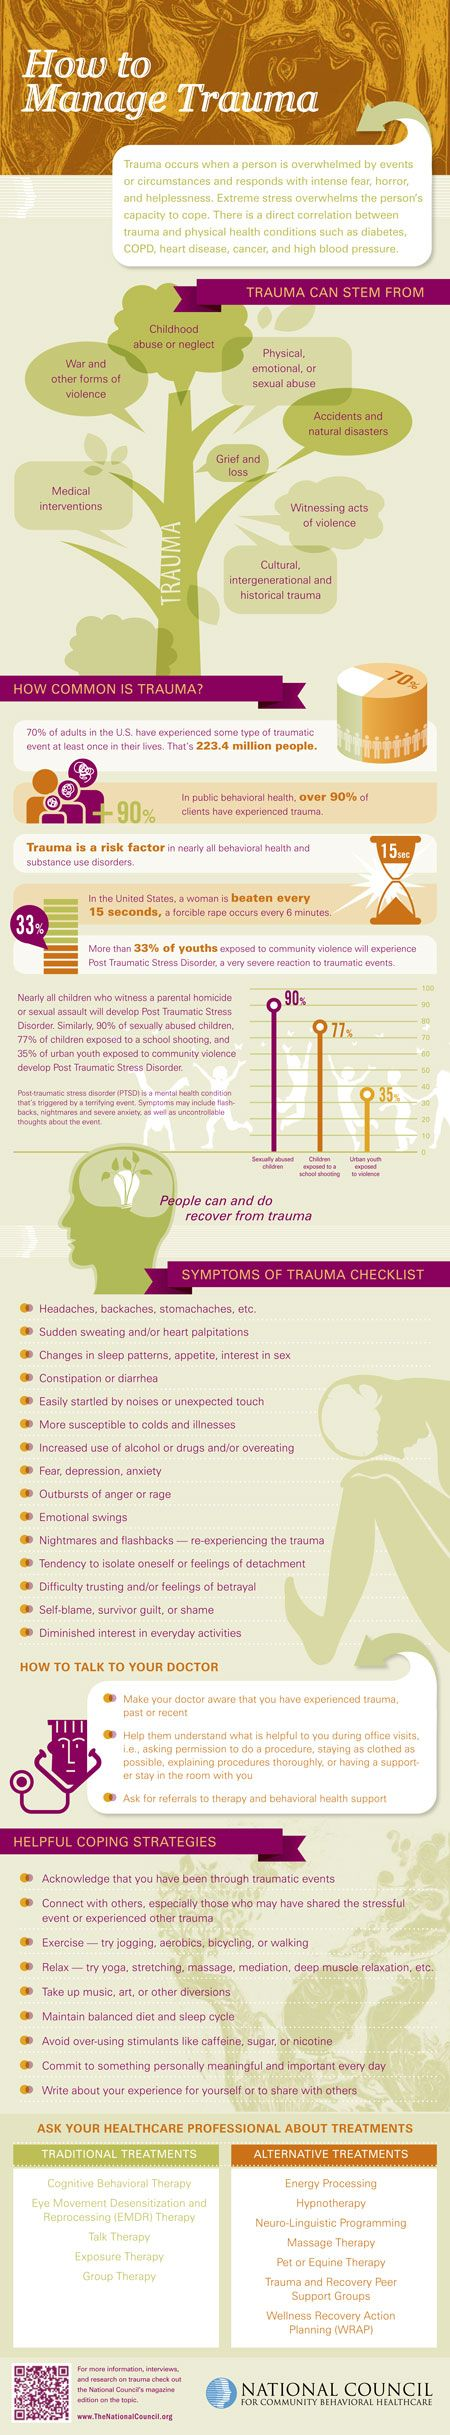 How to Manage Trauma by Monica Cassani at Beyond Meds